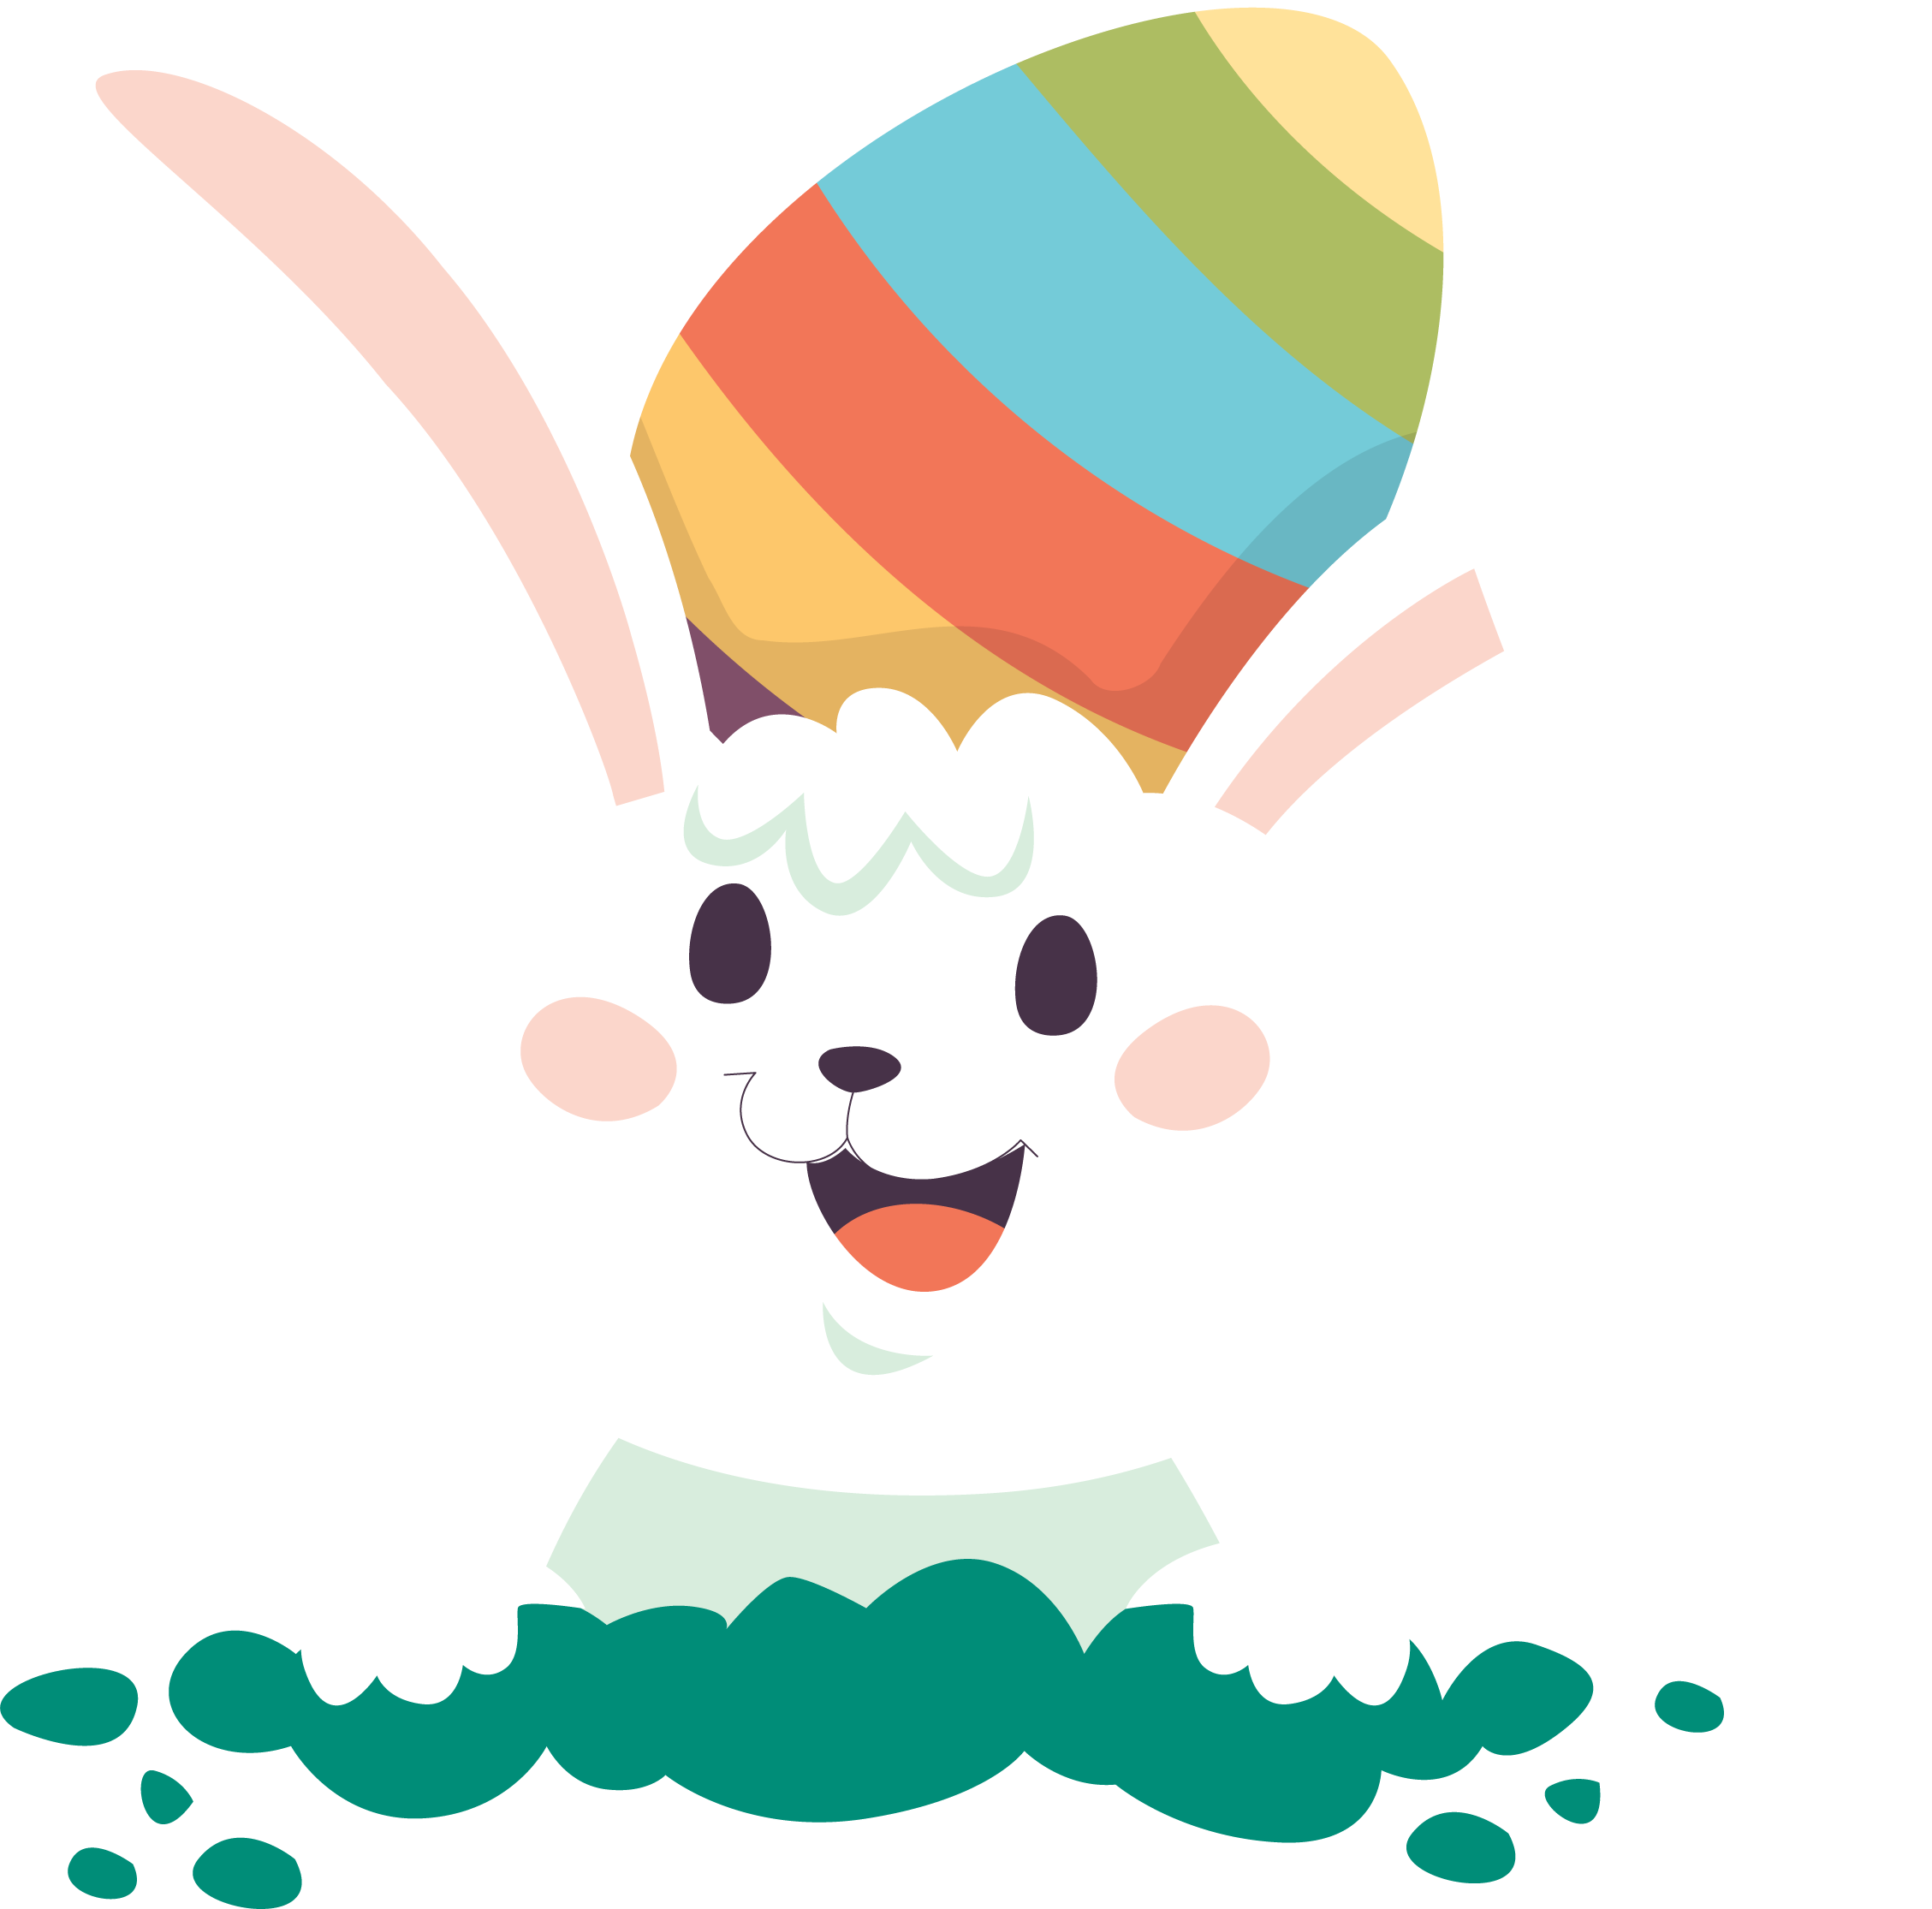 Easter Bunny Png   Free download on ClipArtMag